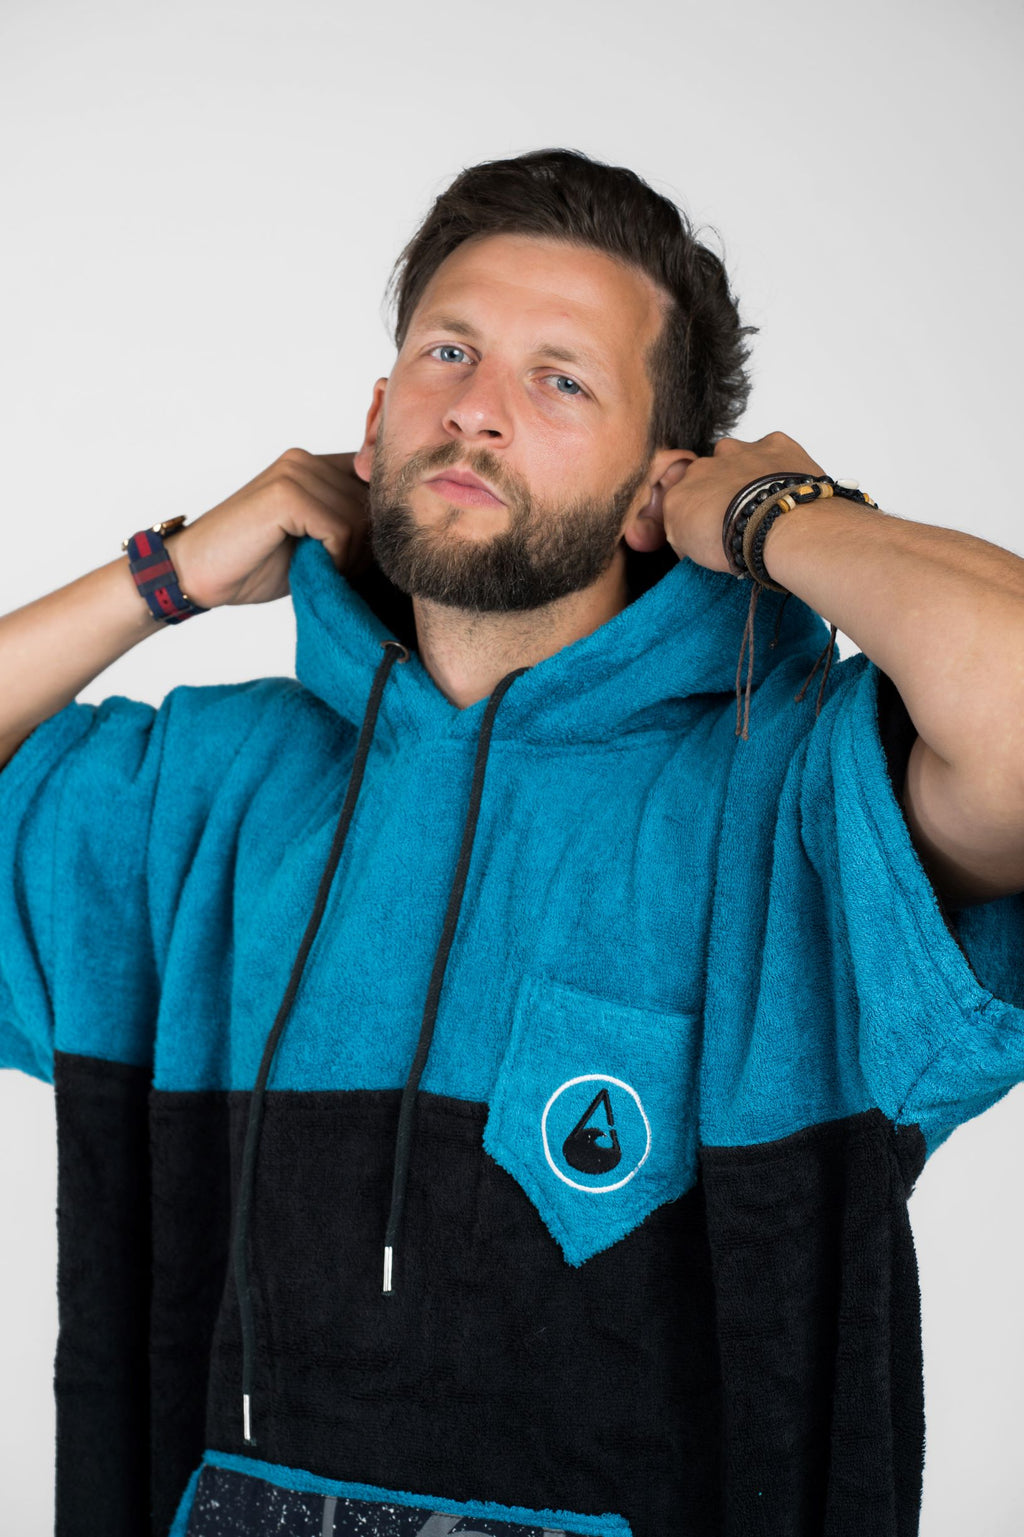 Bamboo and cotton towelling changing robe - Large (Black/turquoise)